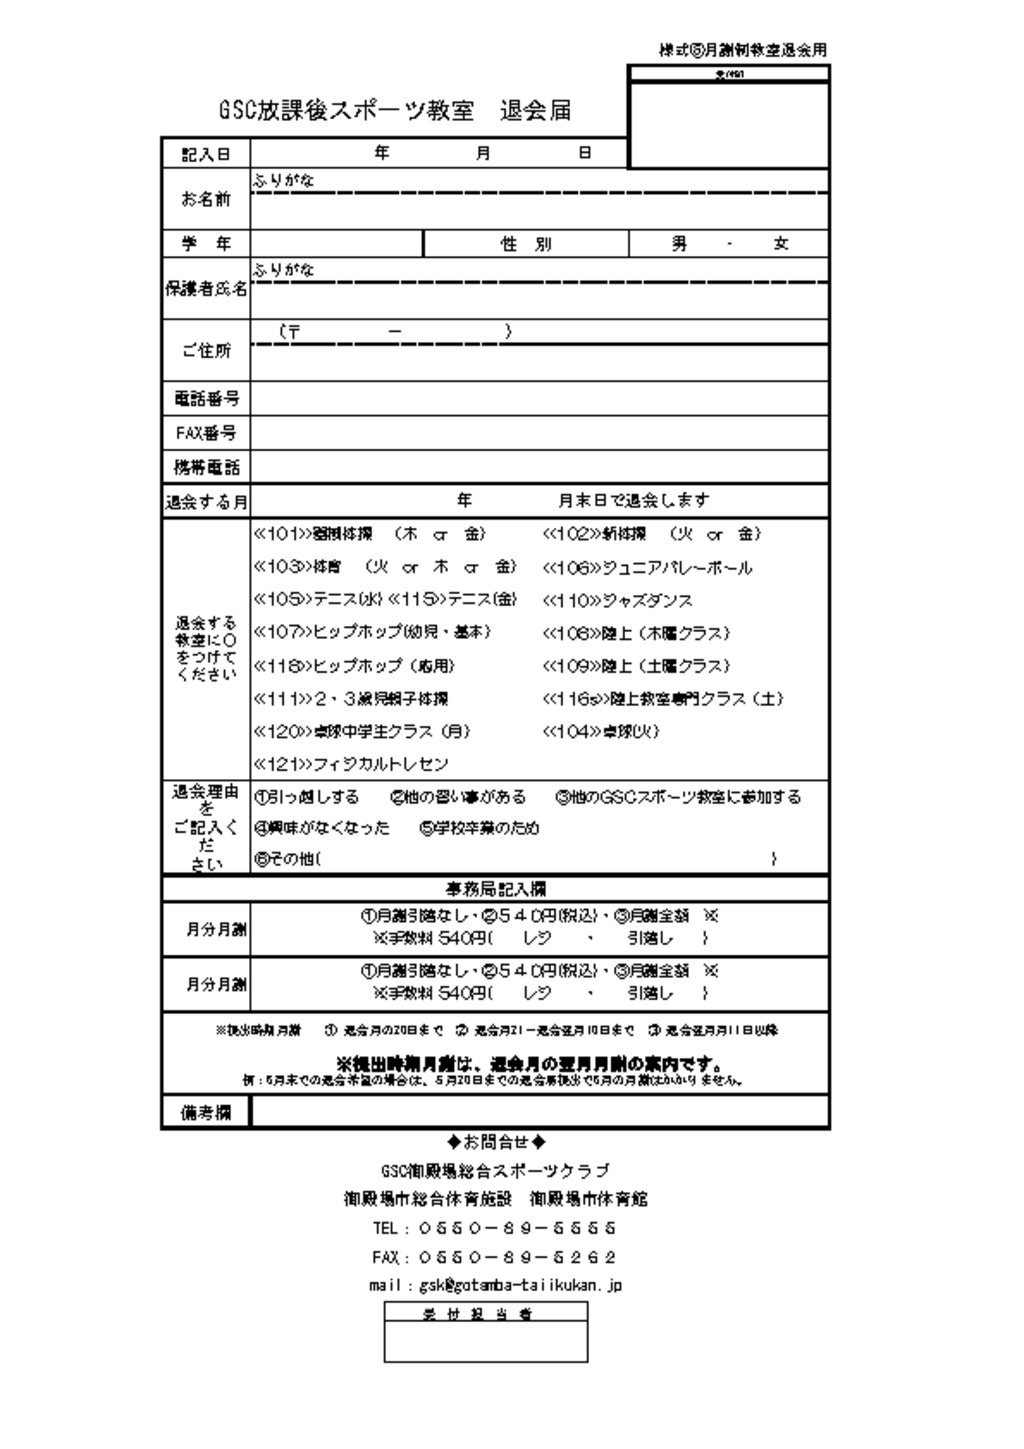 GSC放課後スポーツ教室 退会届のサムネイル